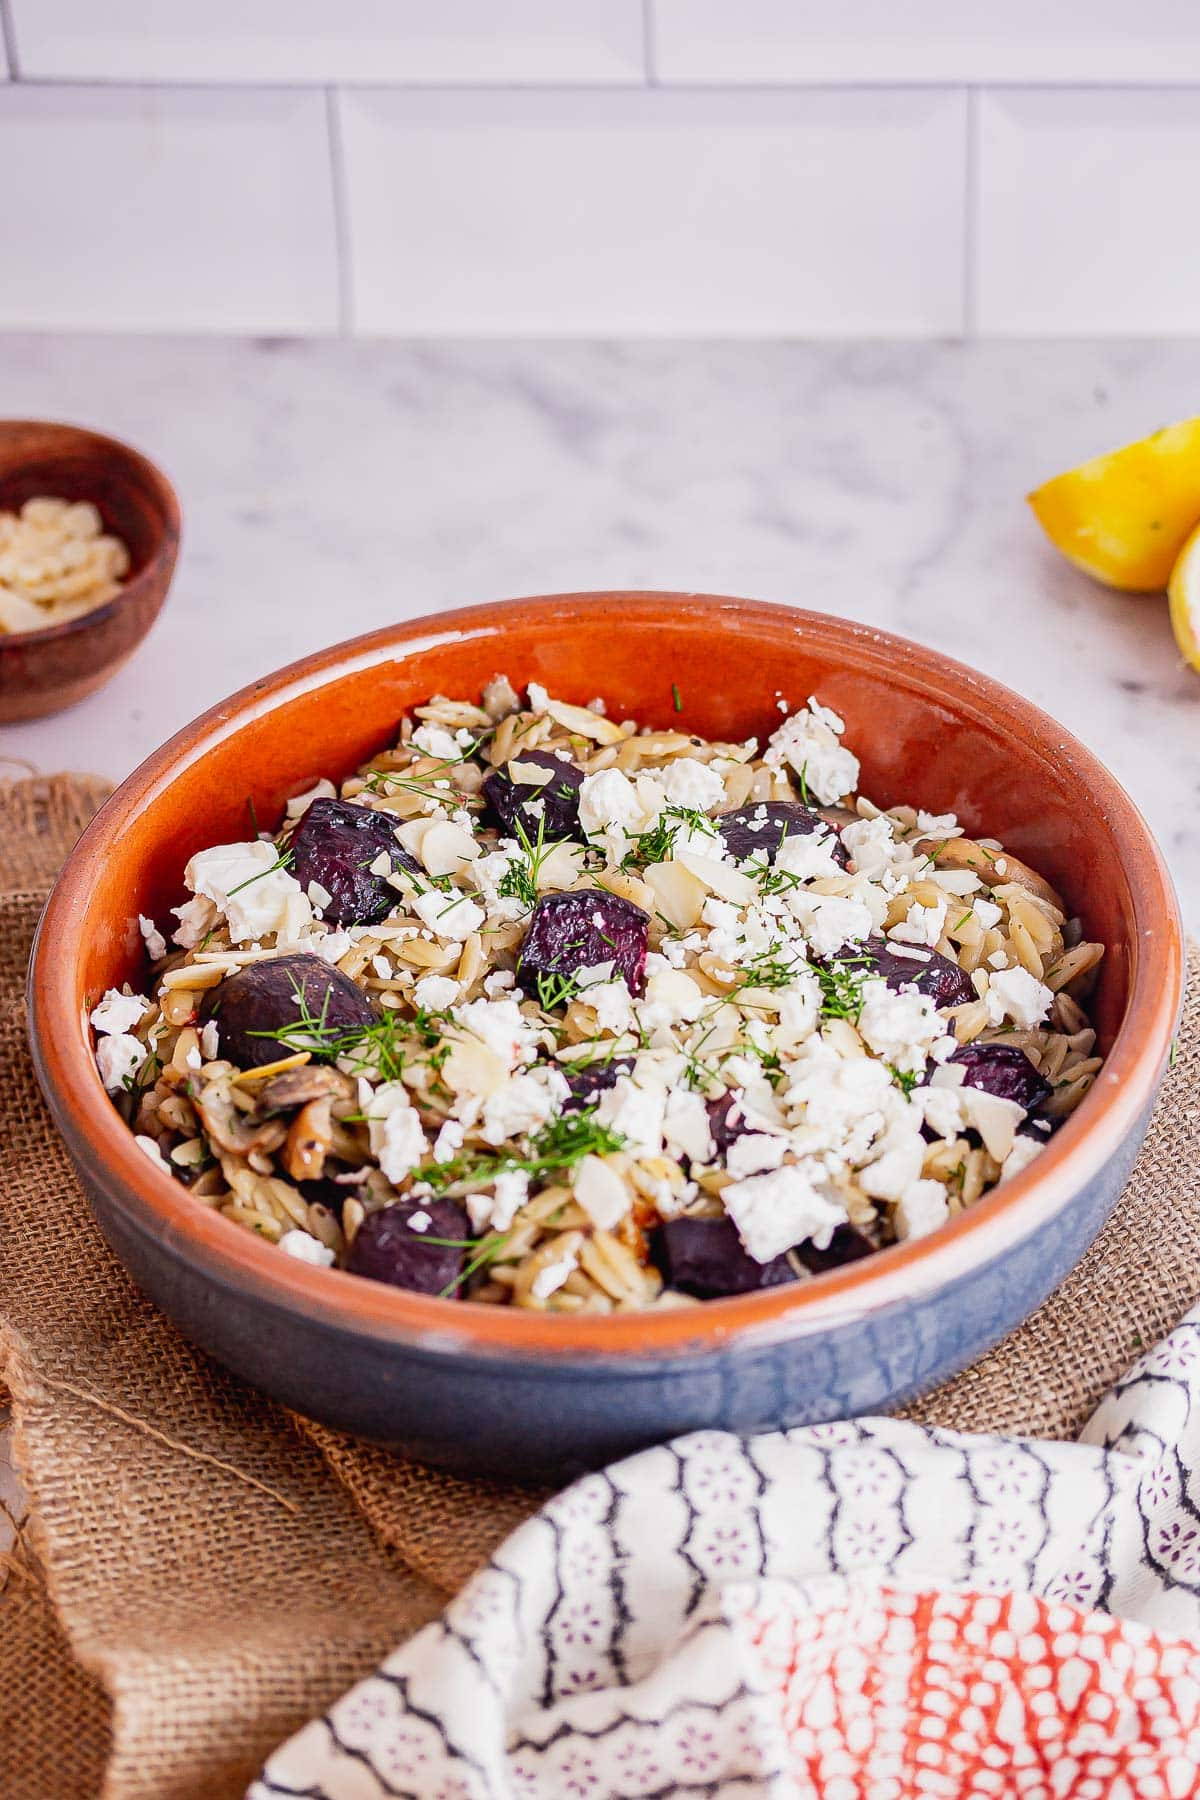 Bowl of orzo with vegetables and feta on a hessian mat